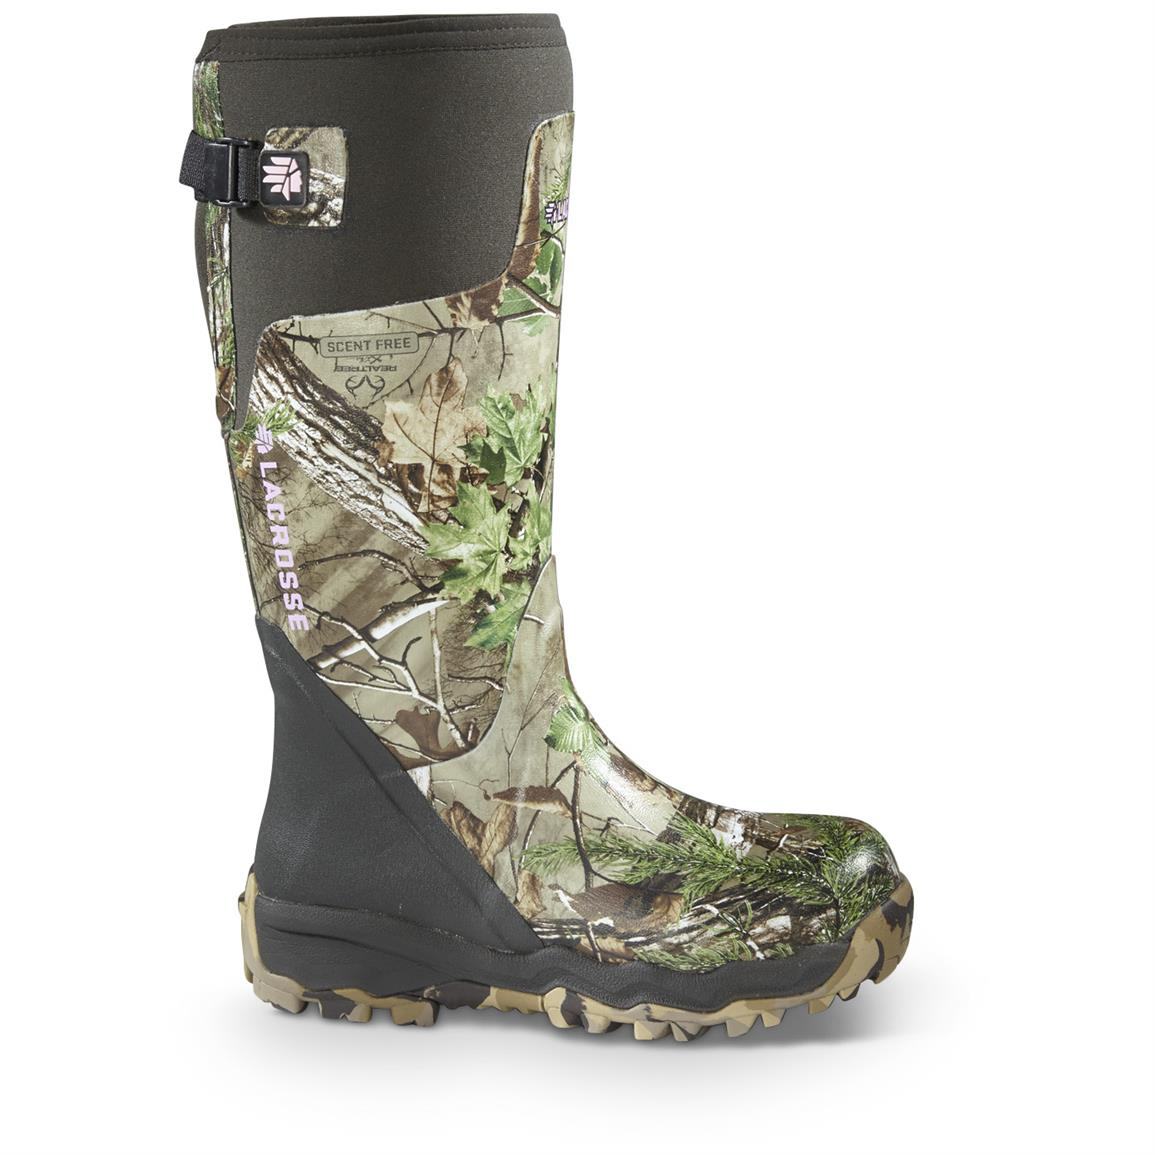 An extremely durable, lightweight and comfortable boot